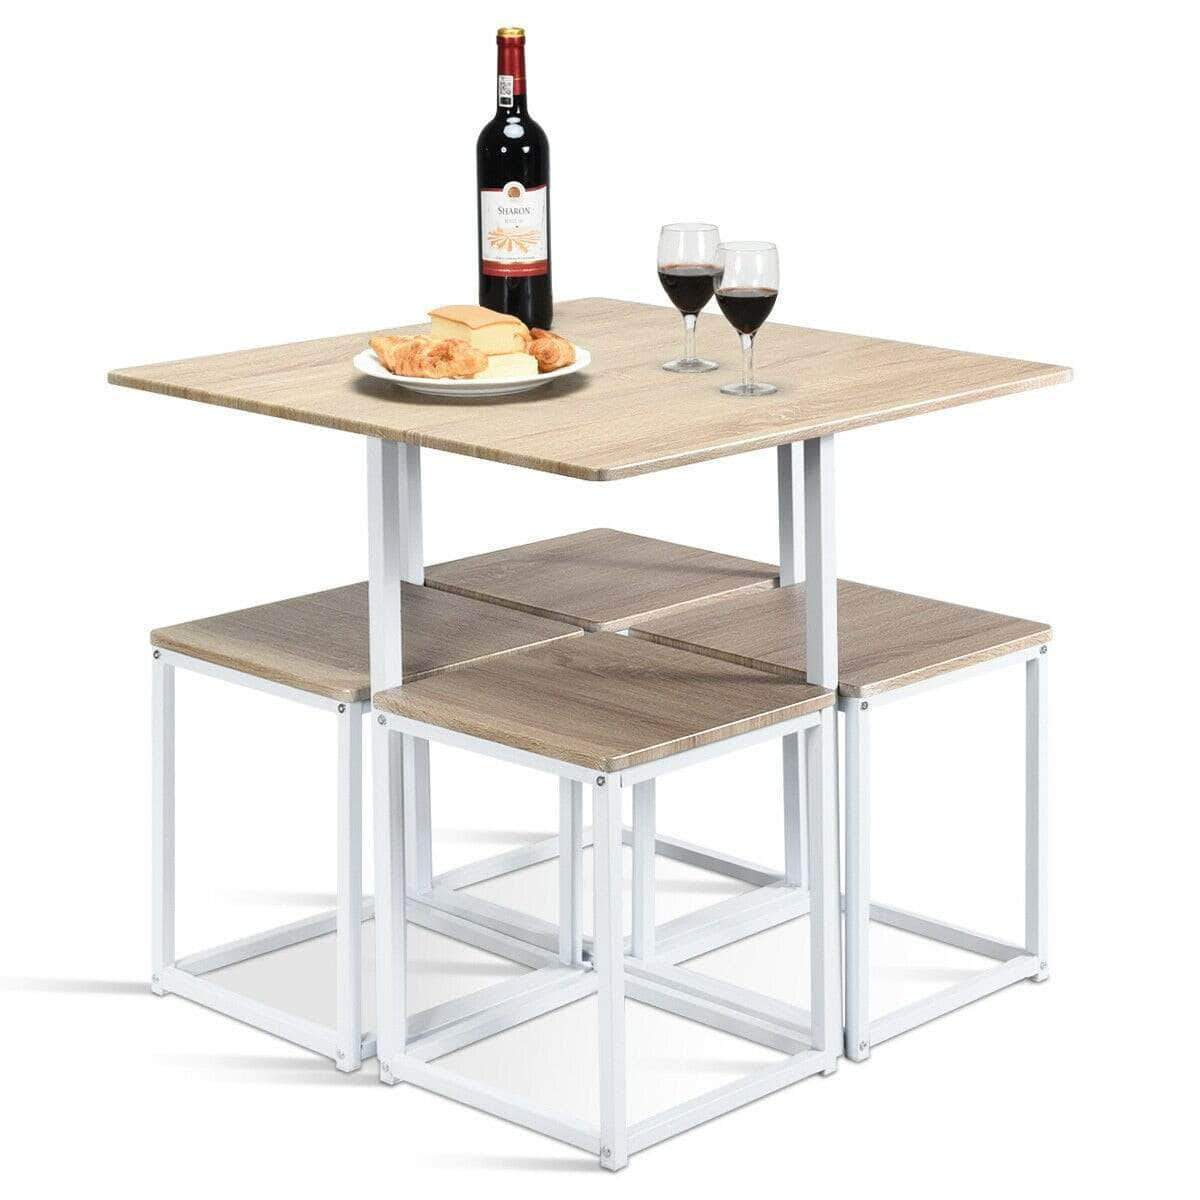 Best Deals On Dining Table And Chairs: 5 Pcs Dining Table And Chairs Set Compact Space Bar